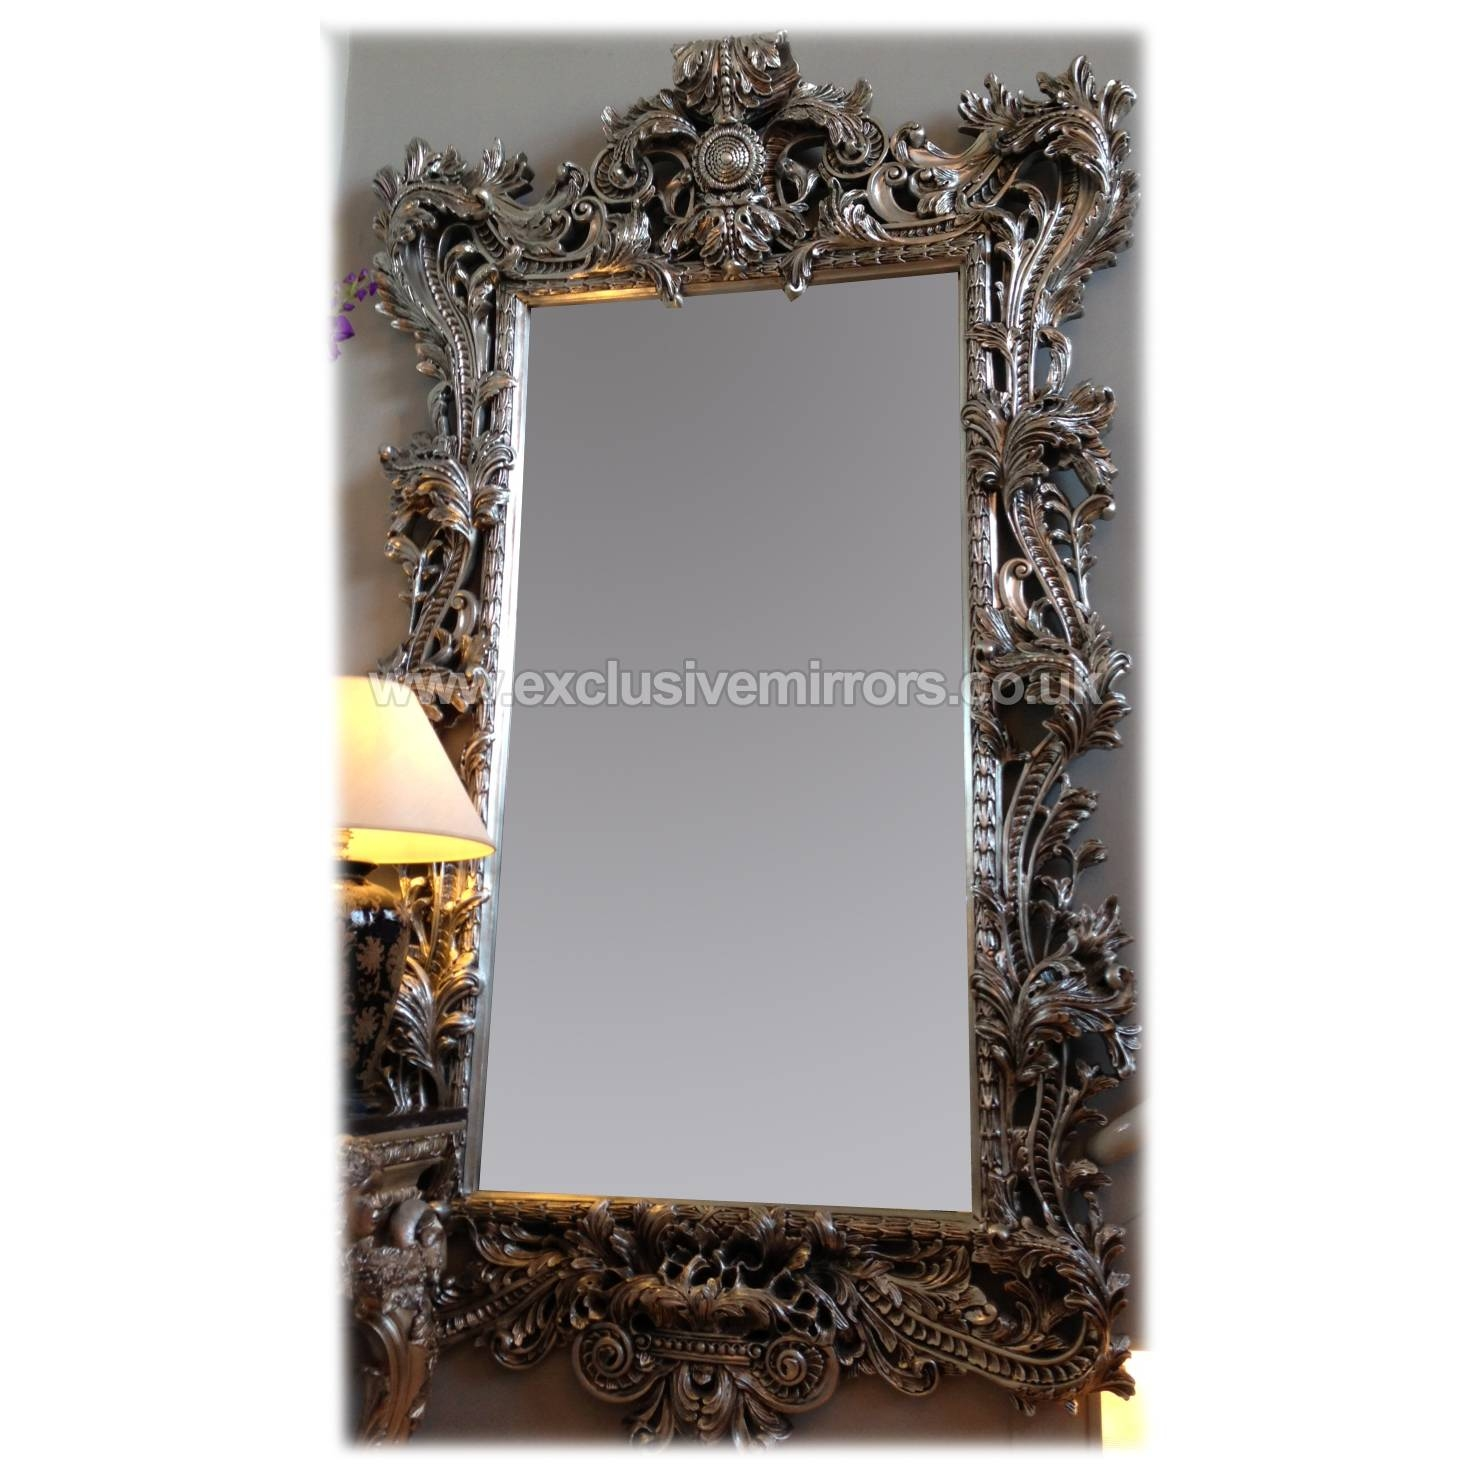 Extra Large Wall Mirrors 109 Cute Interior And Large Gold Very Regarding Extra Large Ornate Mirrors (View 9 of 25)